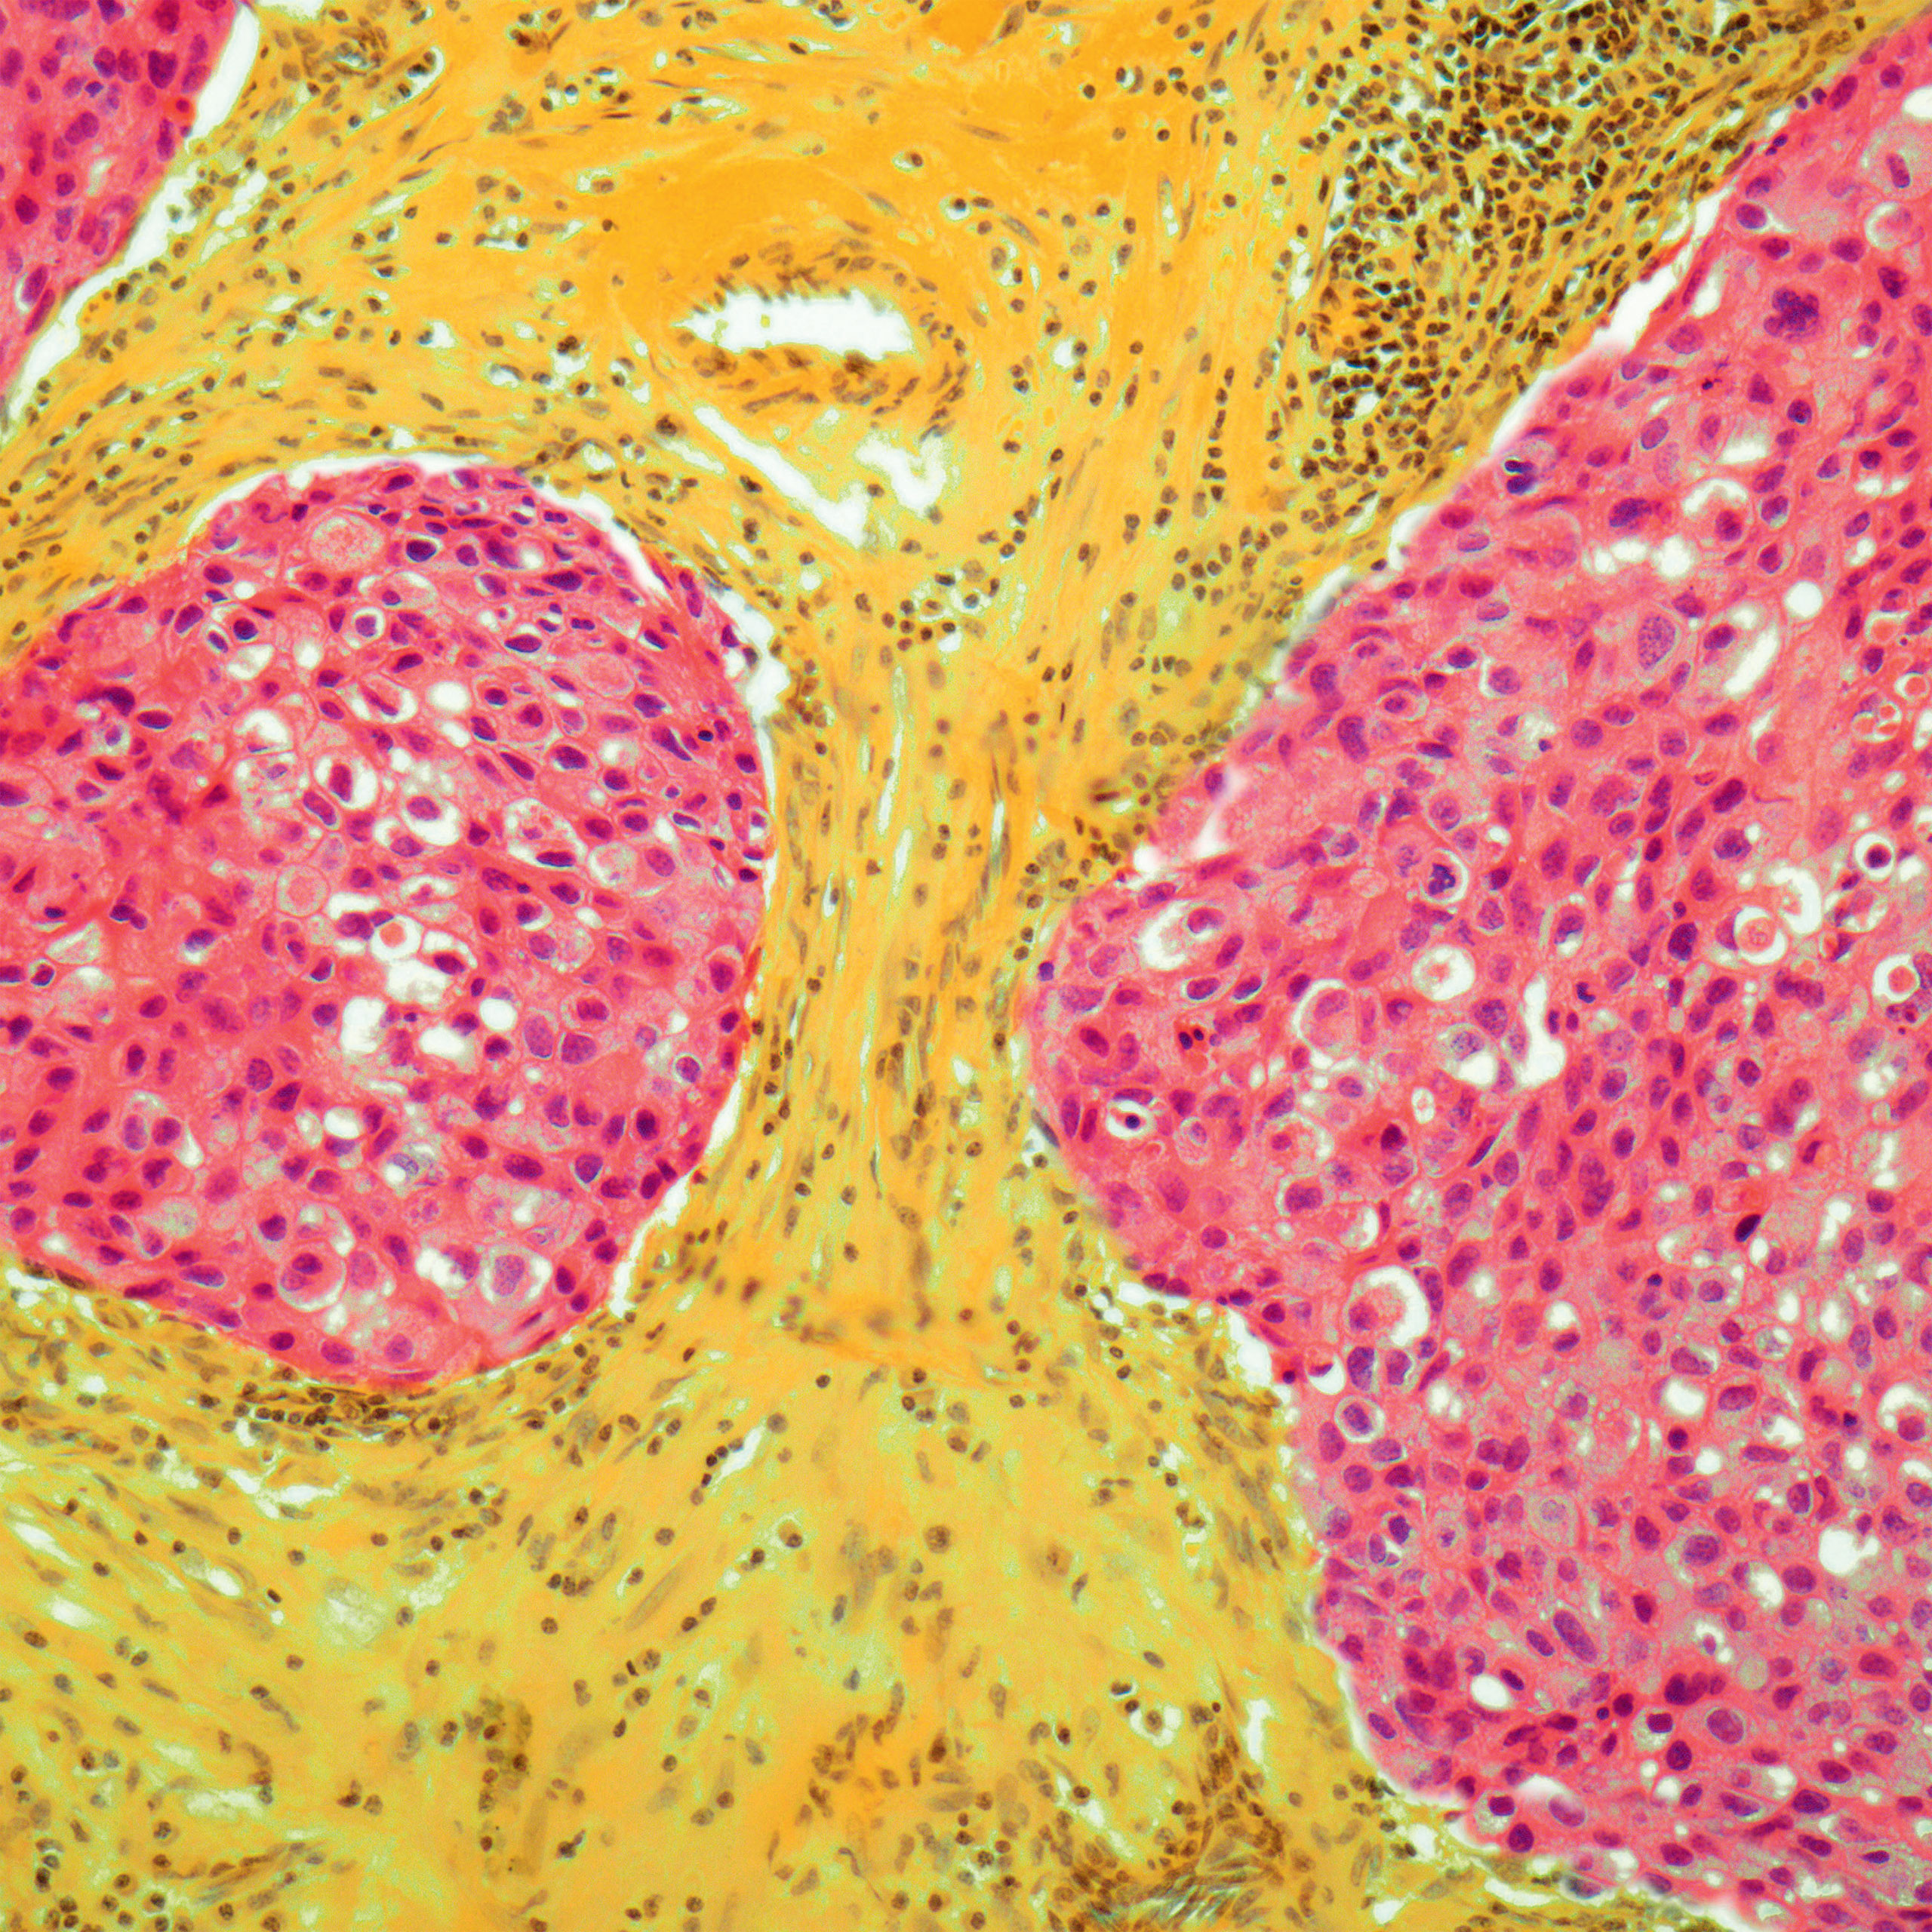 <b>Breast cancer</b> (light micrograph)